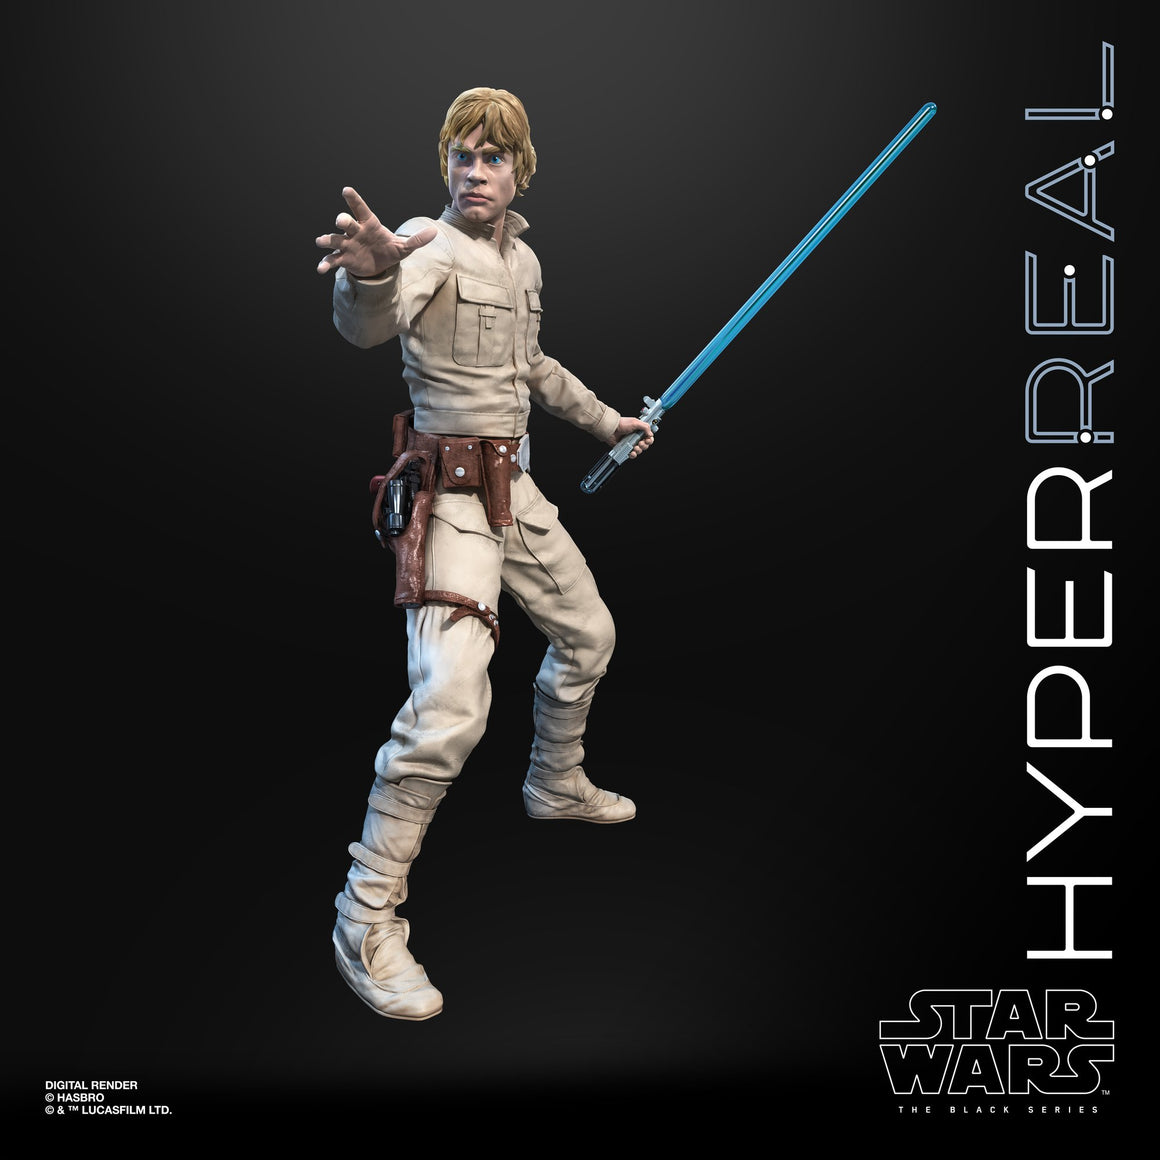 Star Wars The Black Series Luke Skywalker Hyperreal 8-Inch Action Figure - MAY 2020